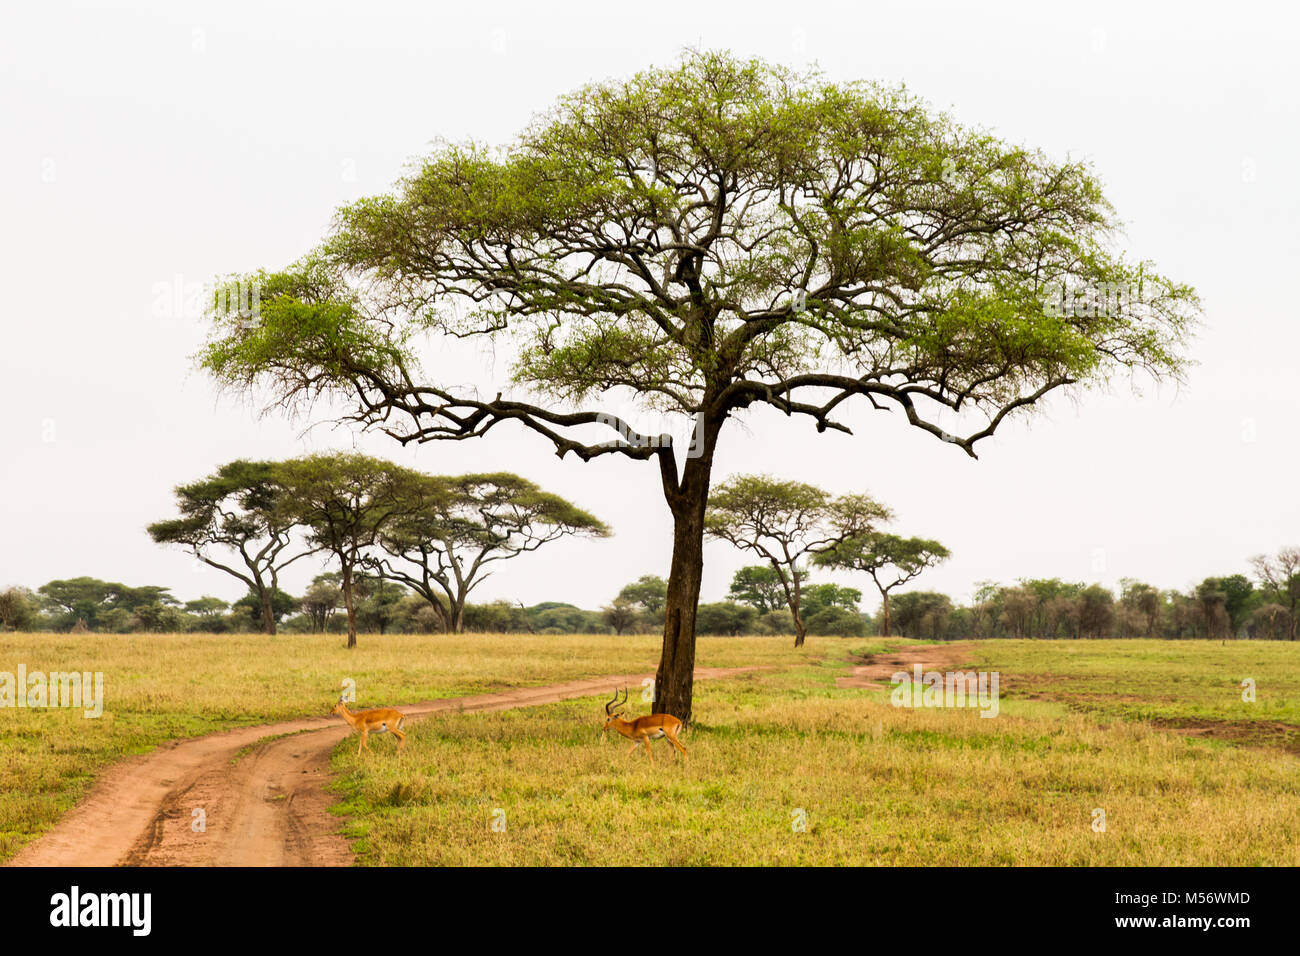 Landscape of National Park in Tanzania with animals running free - Stock Image